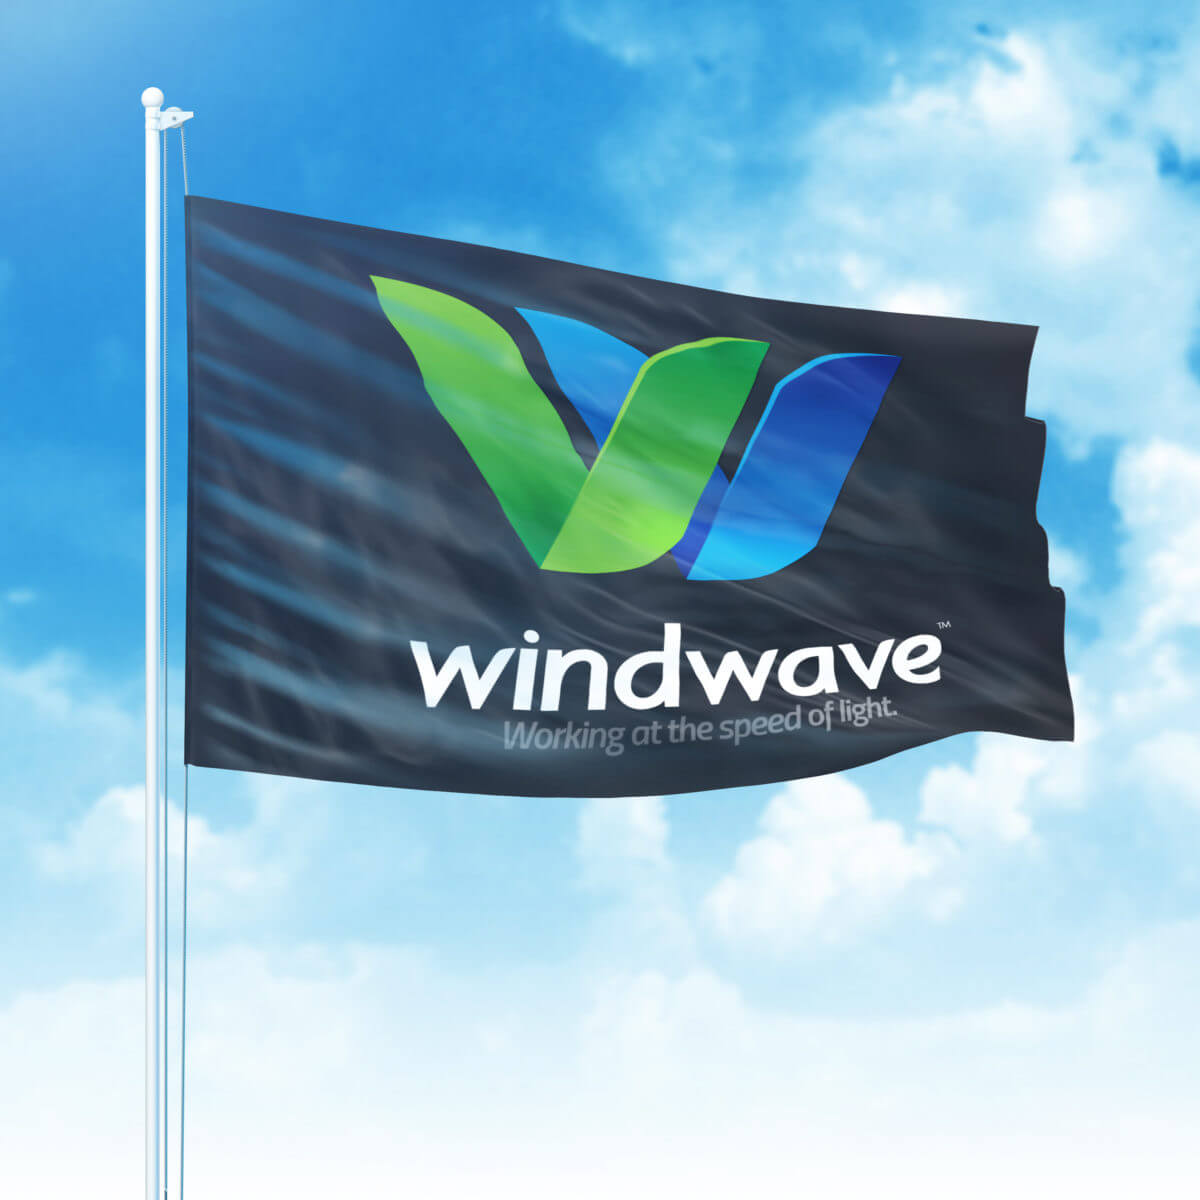 windwave_flag_mockup-1200x1200